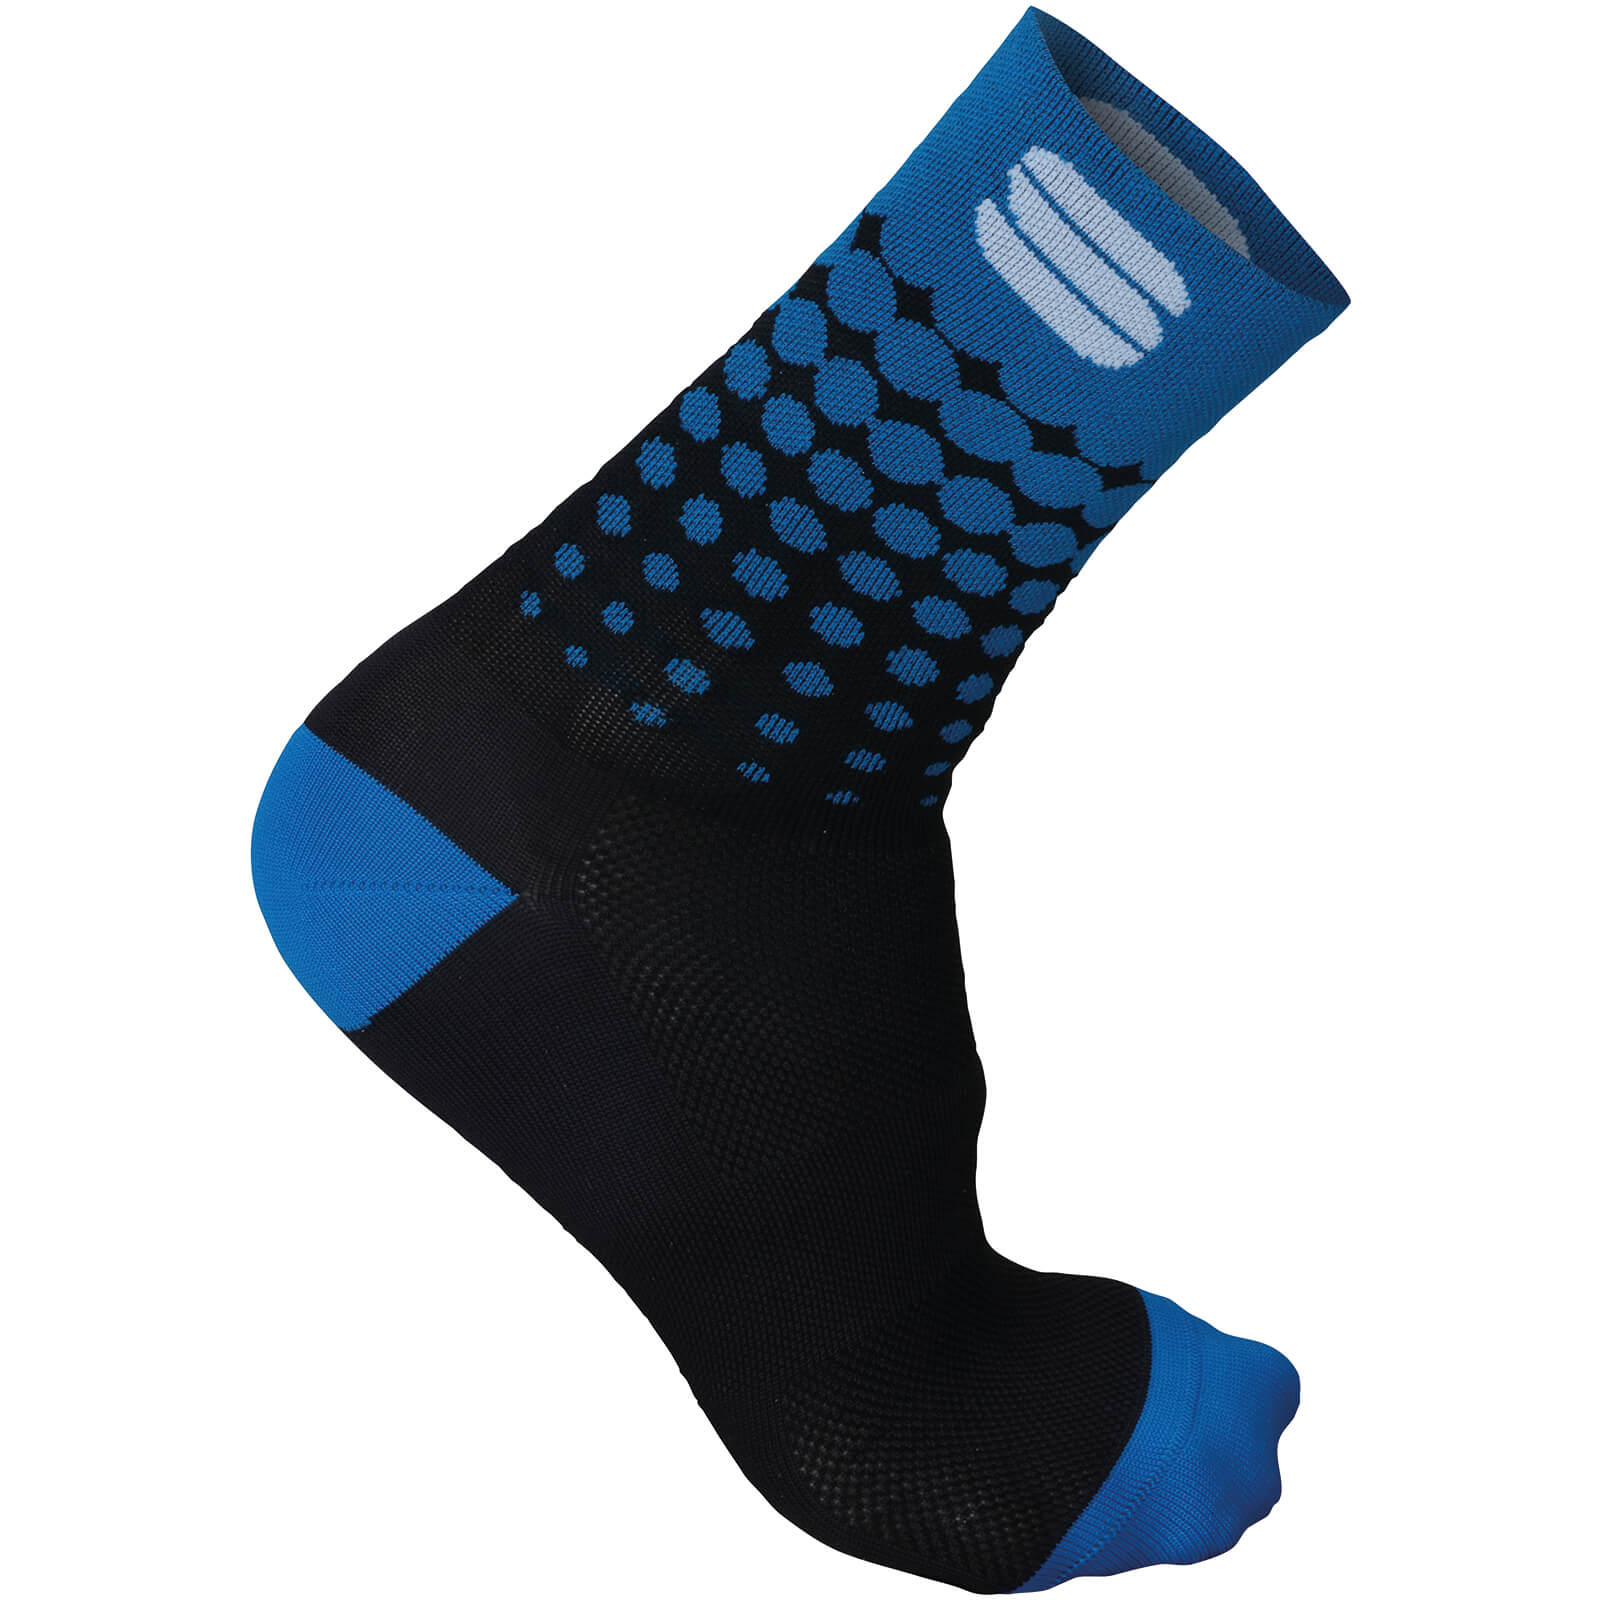 Sportful Flair 15 Socks - Black/Electric Blue